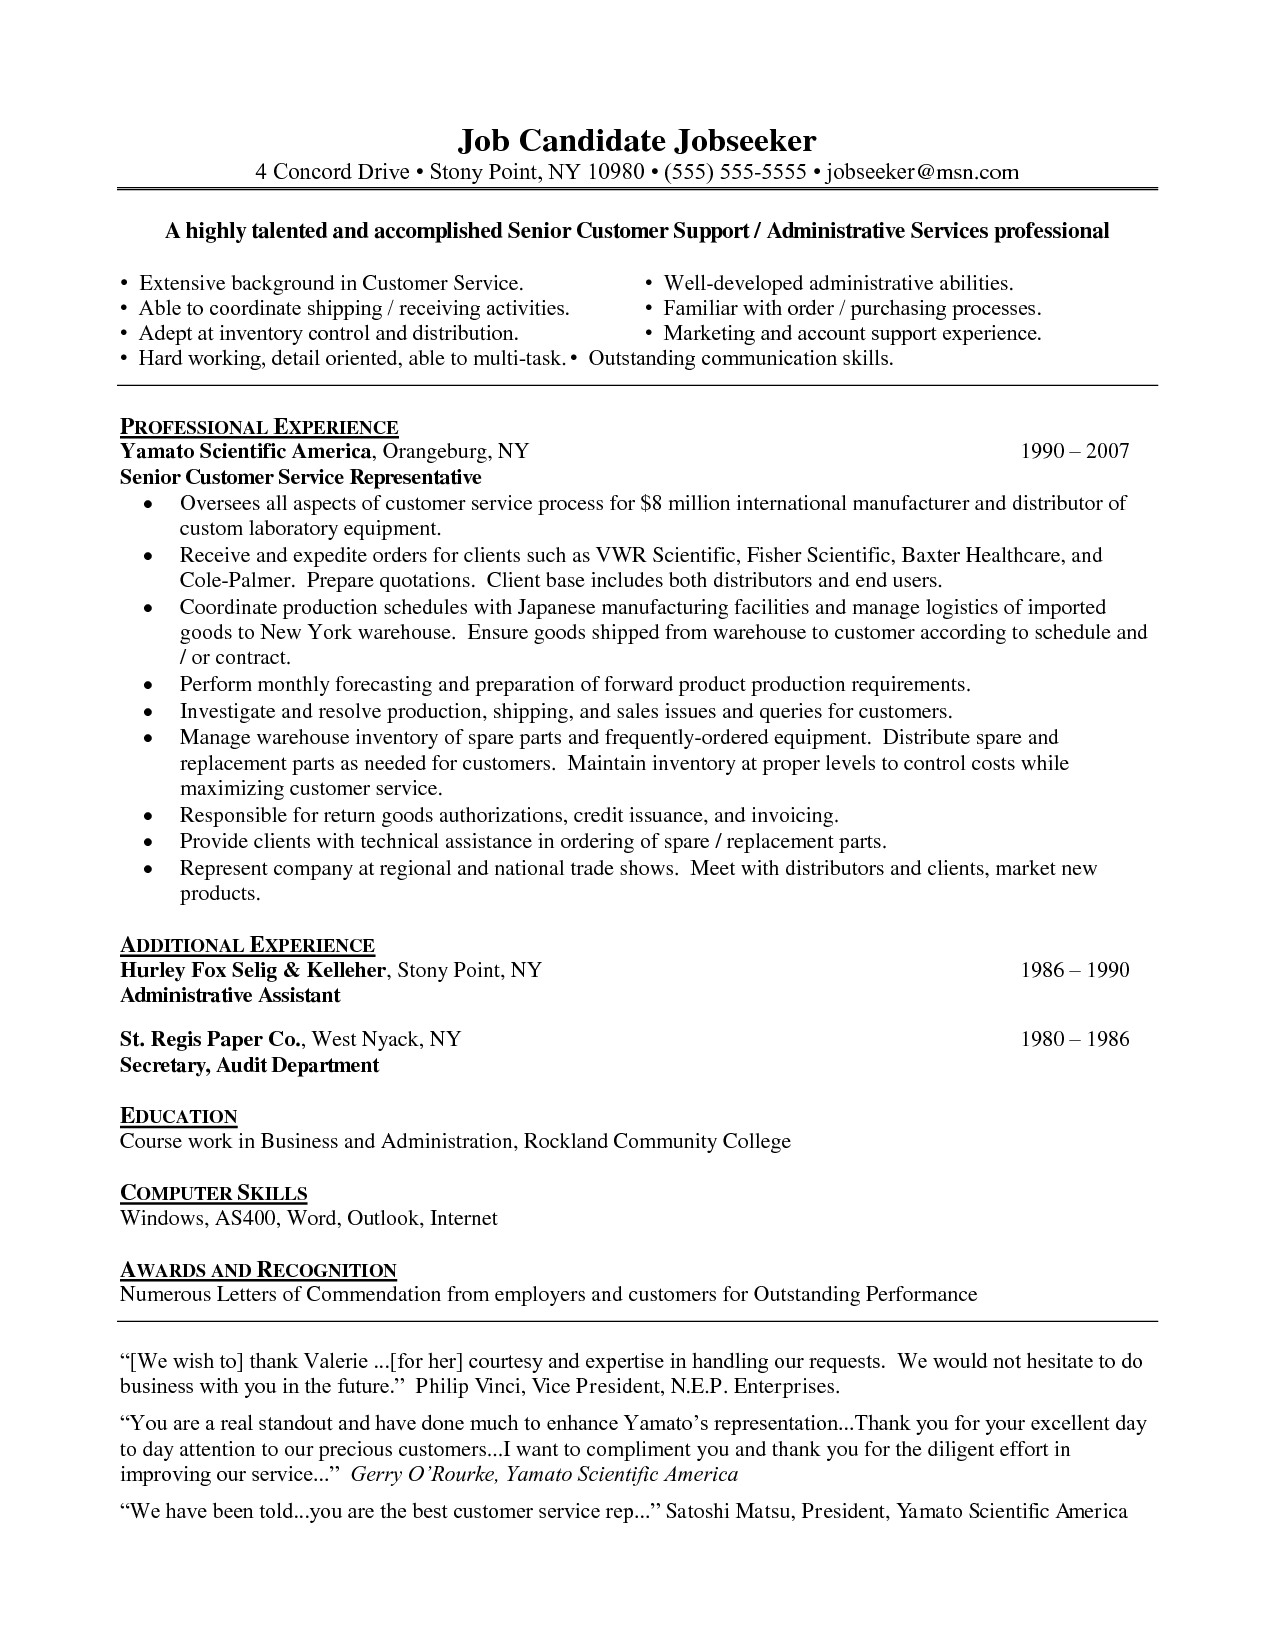 Professional Summary Resume Gorgeous Resume Actuary Objective Bookkeeper Professional Entry Level Design Inspiration